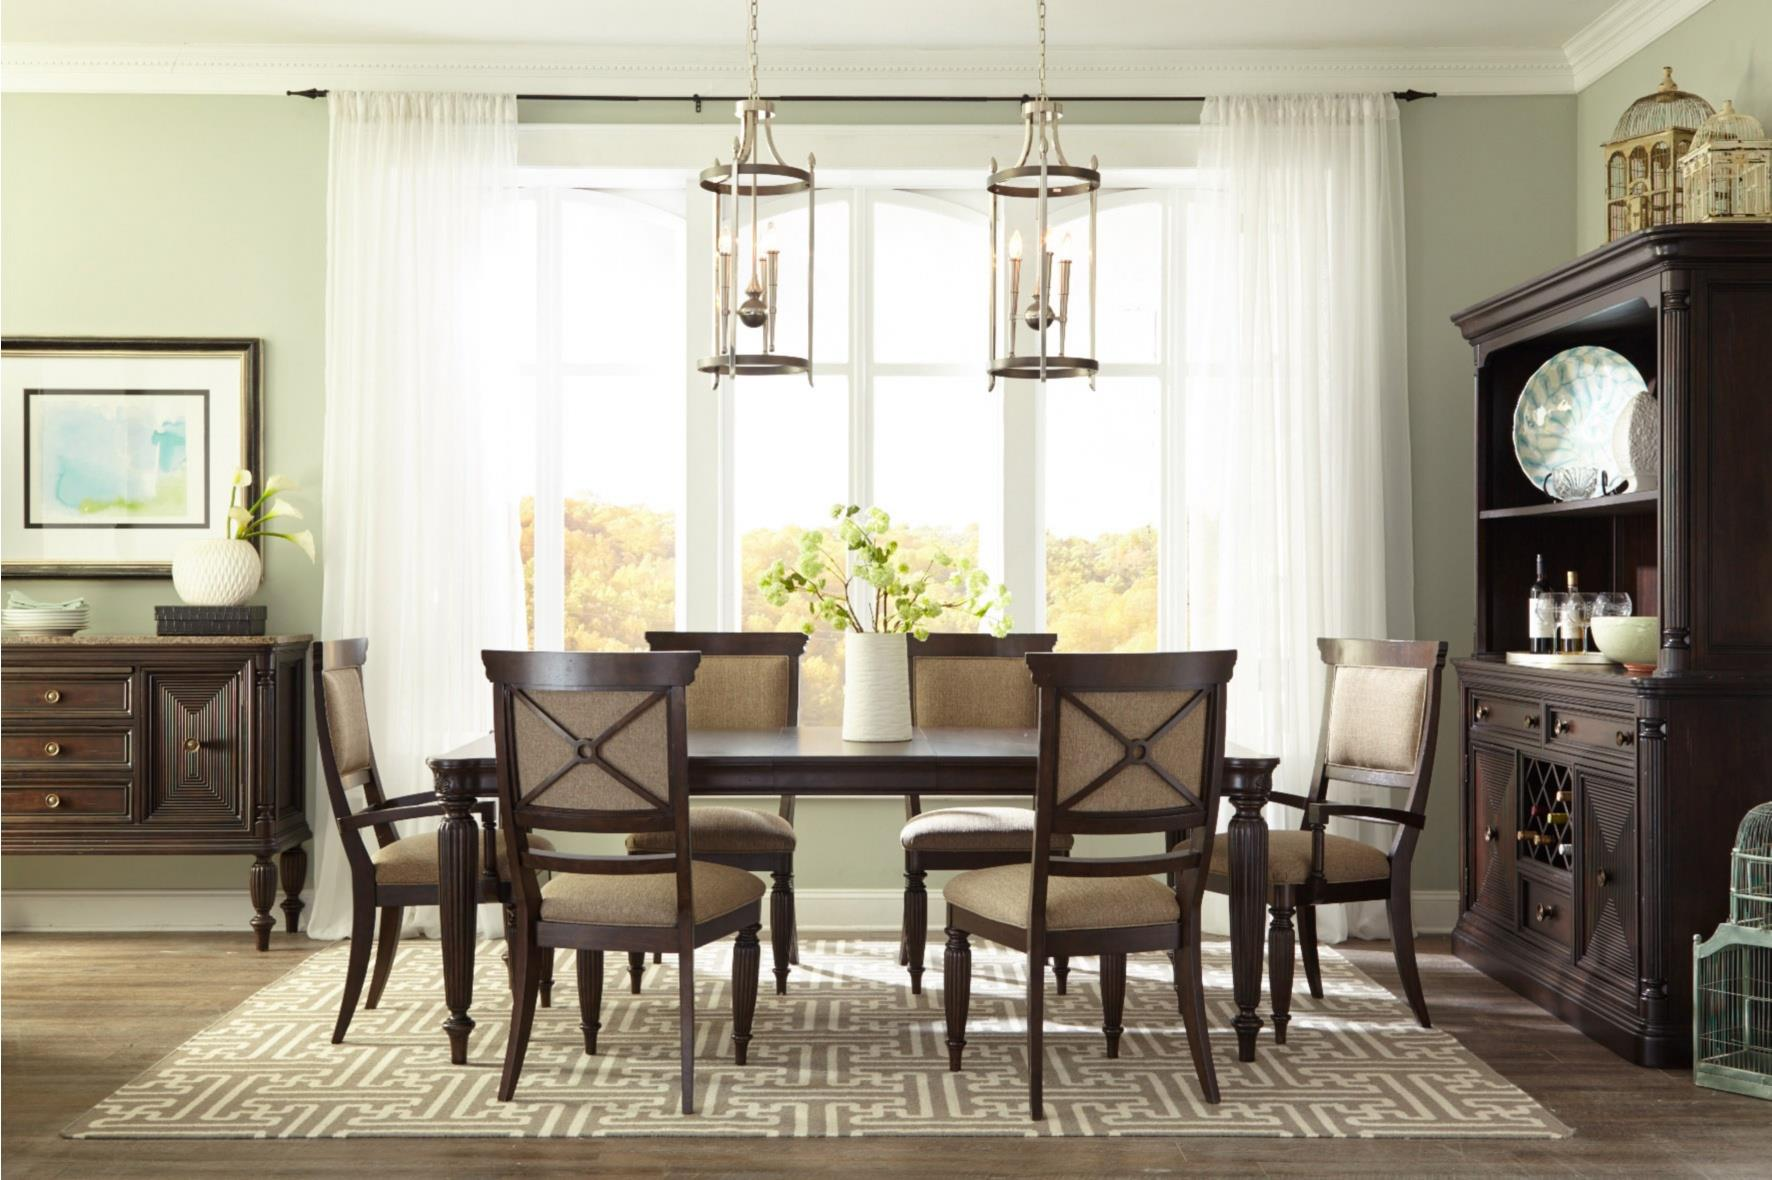 Broyhill Furniture Jessa Formal Dining Room Group - Item Number: 4980 Dining Room Group 1